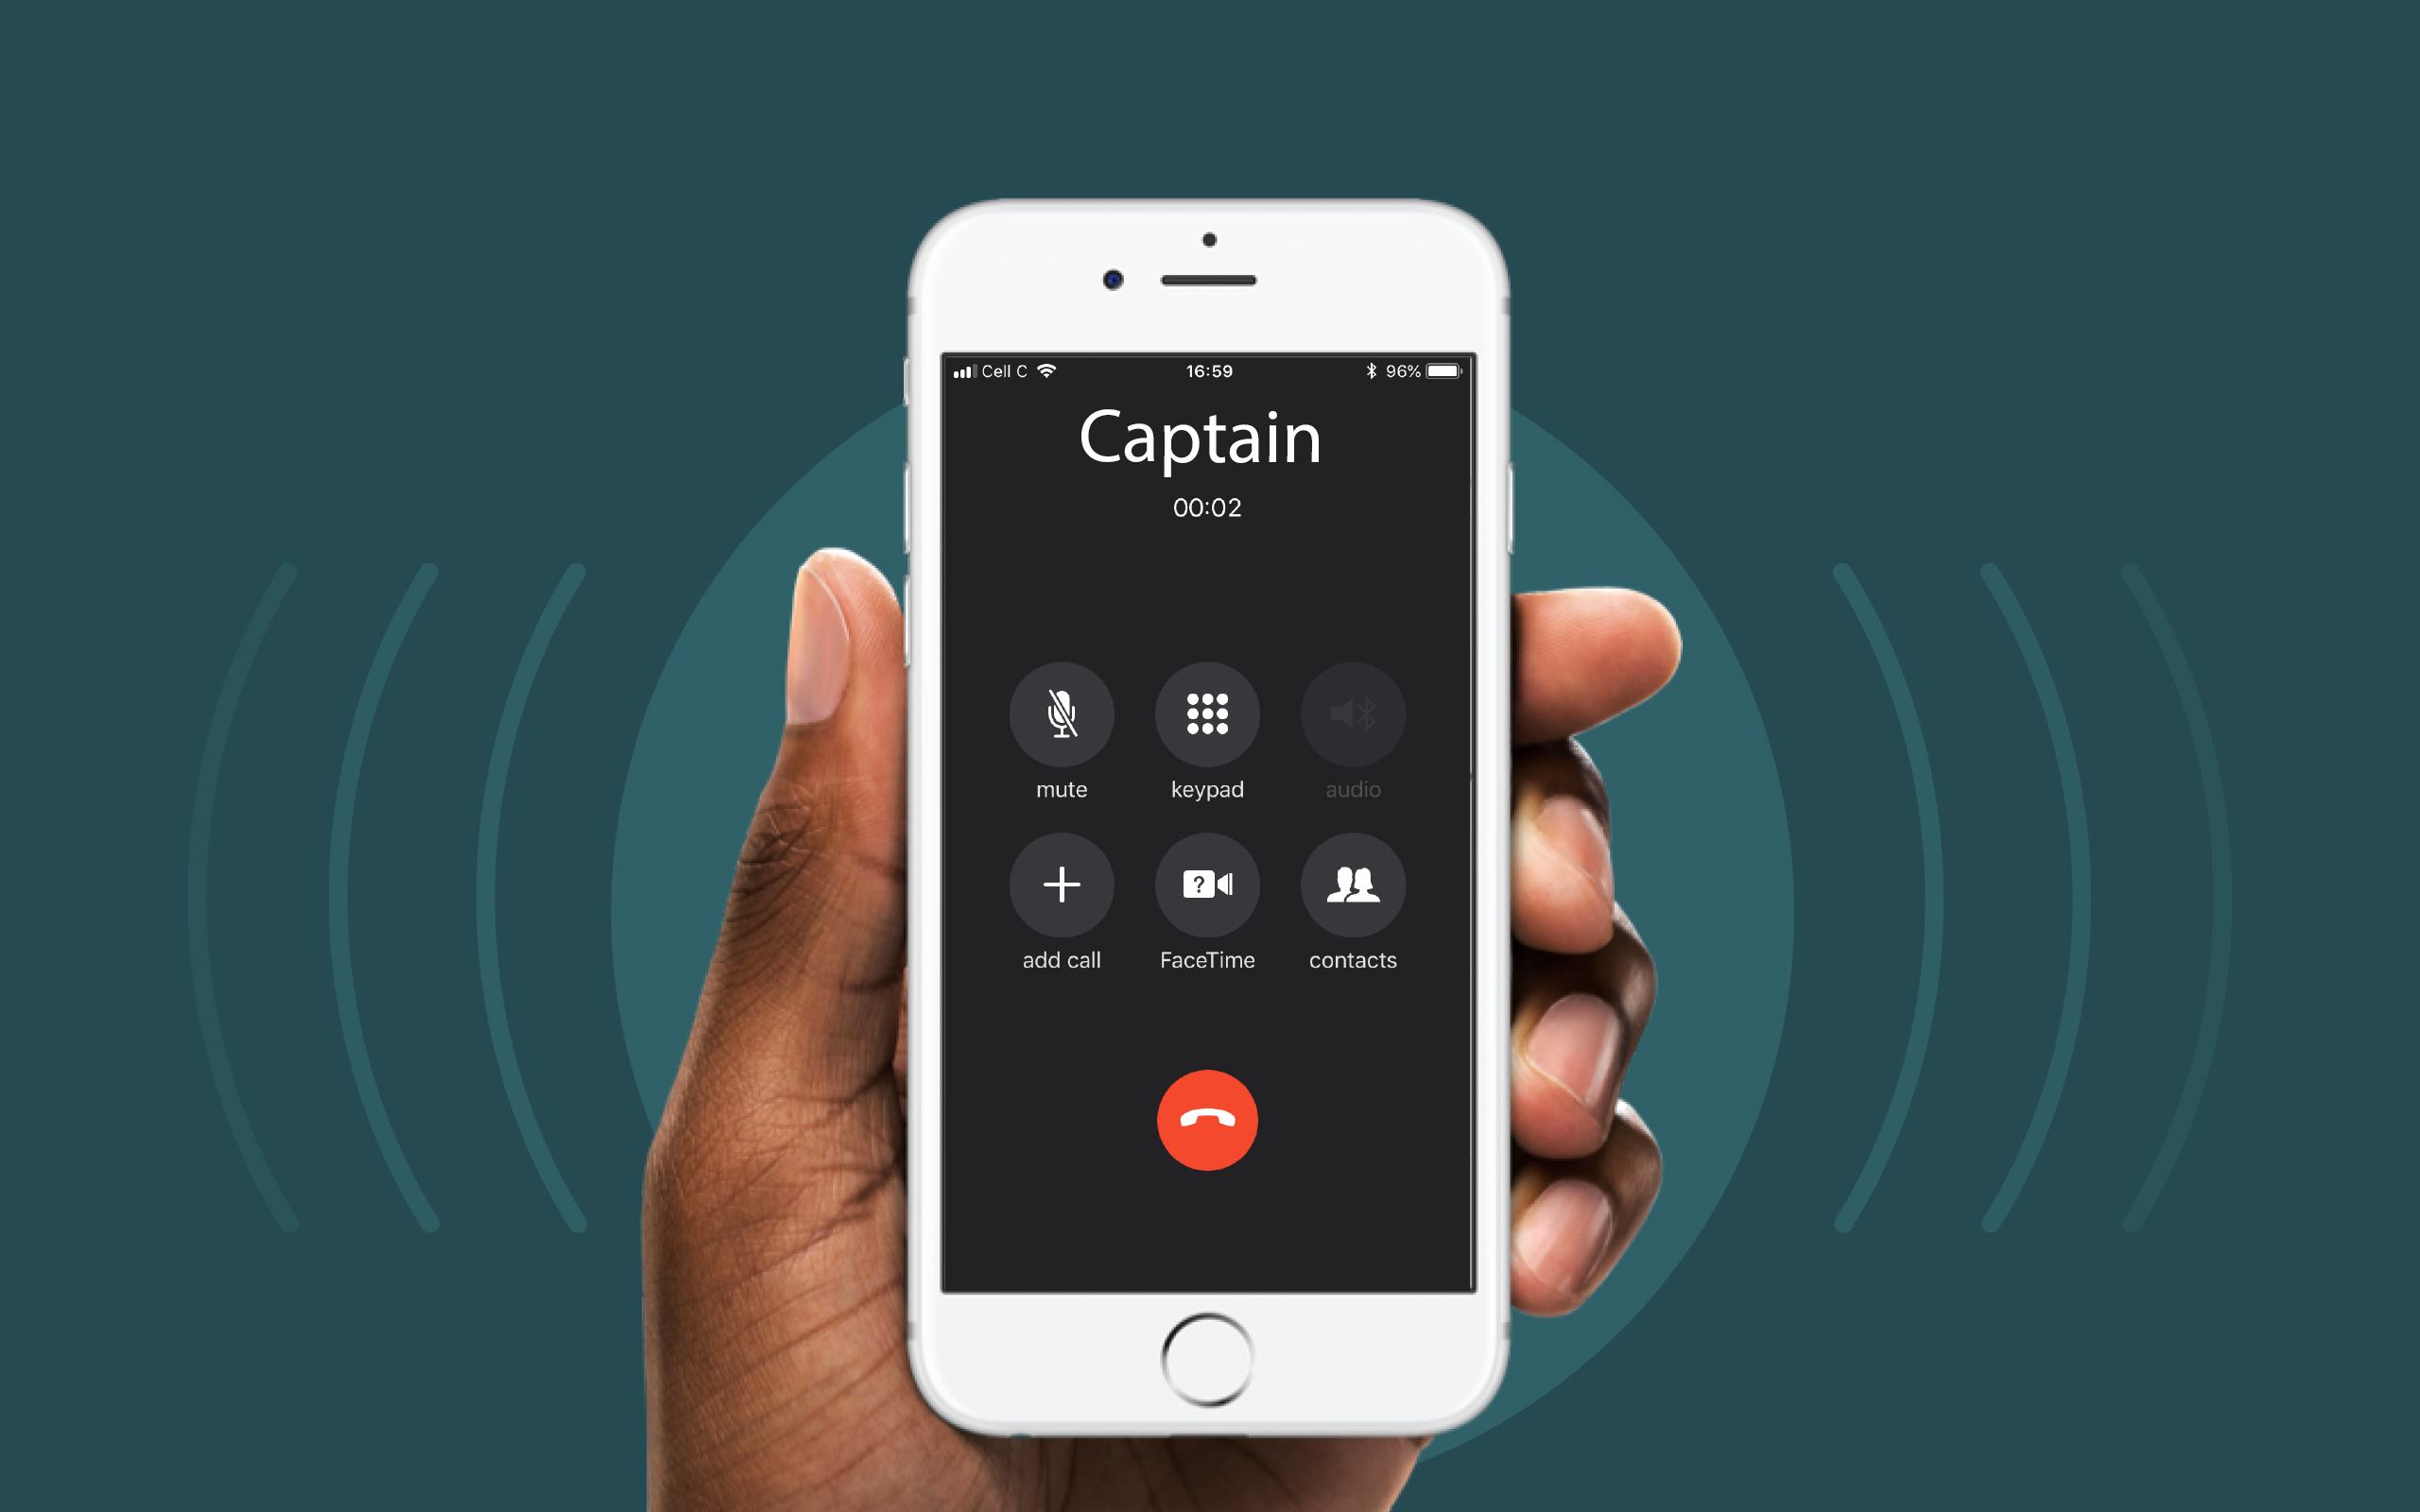 Captain will call you